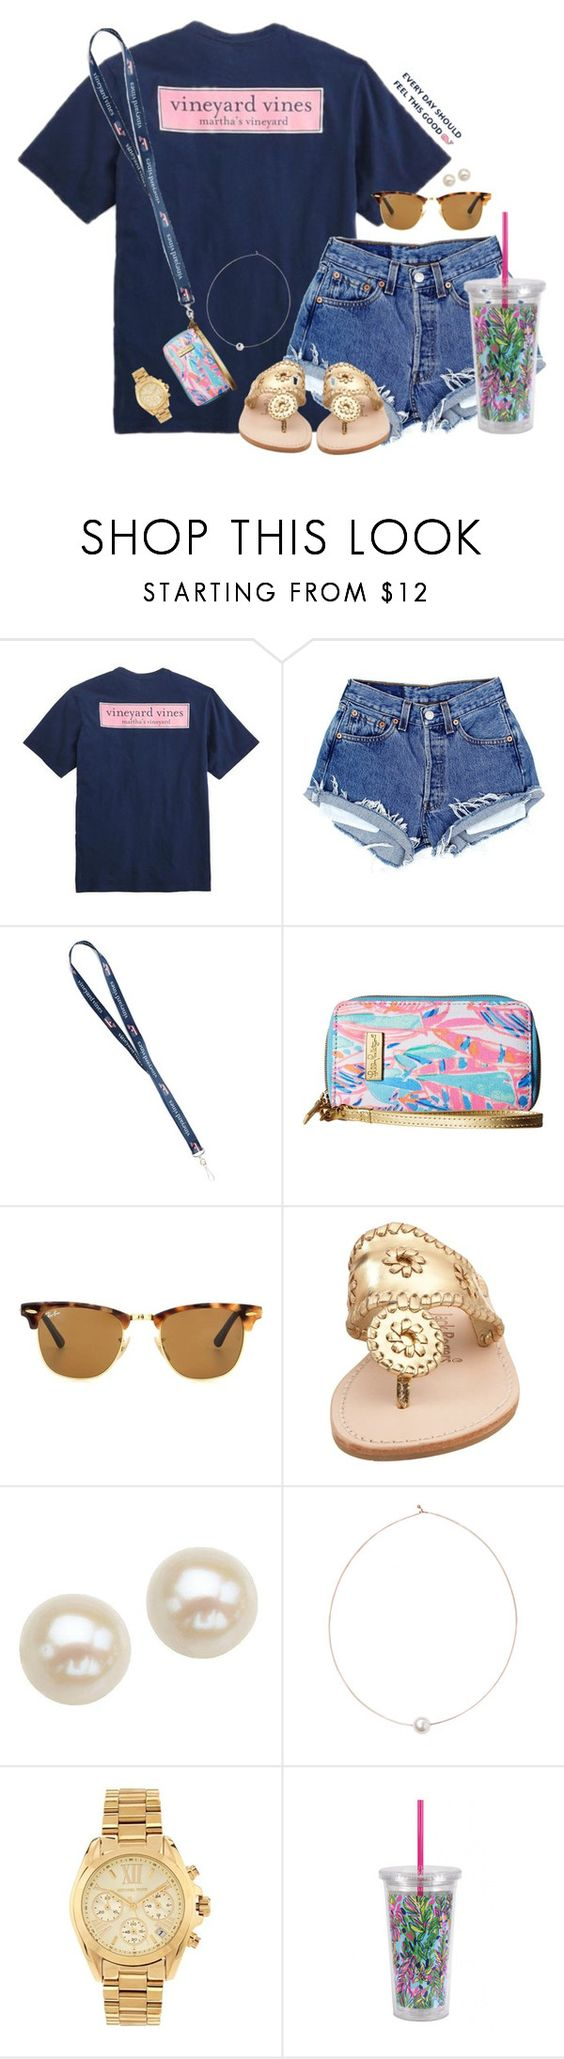 """I really want to go to New York City"" by aweaver-2 on Polyvore featuring Vineyard Vines, Lilly Pulitzer, Ray-Ban, Jack Rogers, Honora, Shop Latitude Bazaar and Michael Kors"